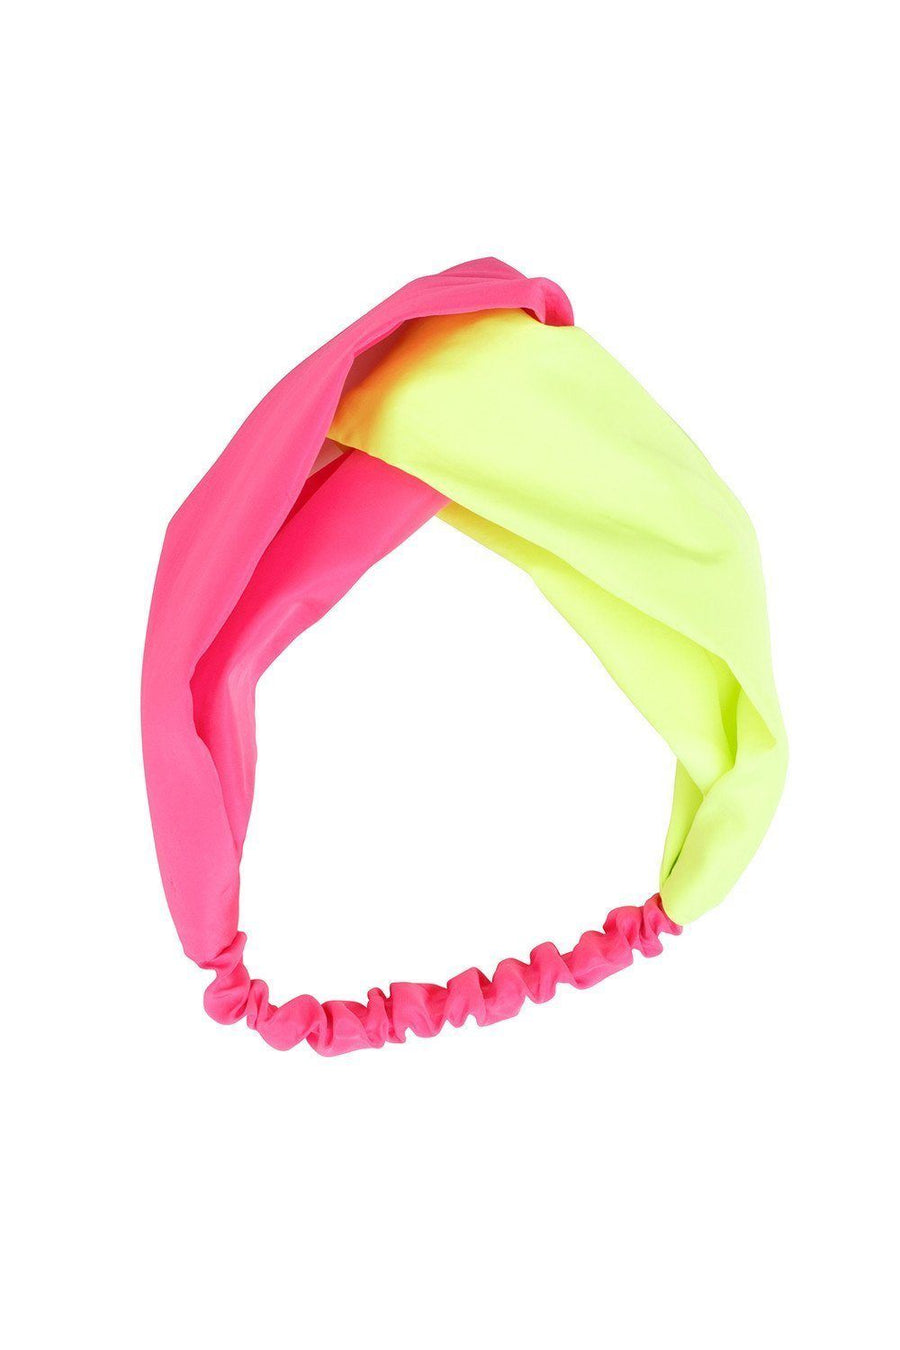 Wrap it Up - Neon Pink/Yellow Taffeta - PROJECT 6, modest fashion